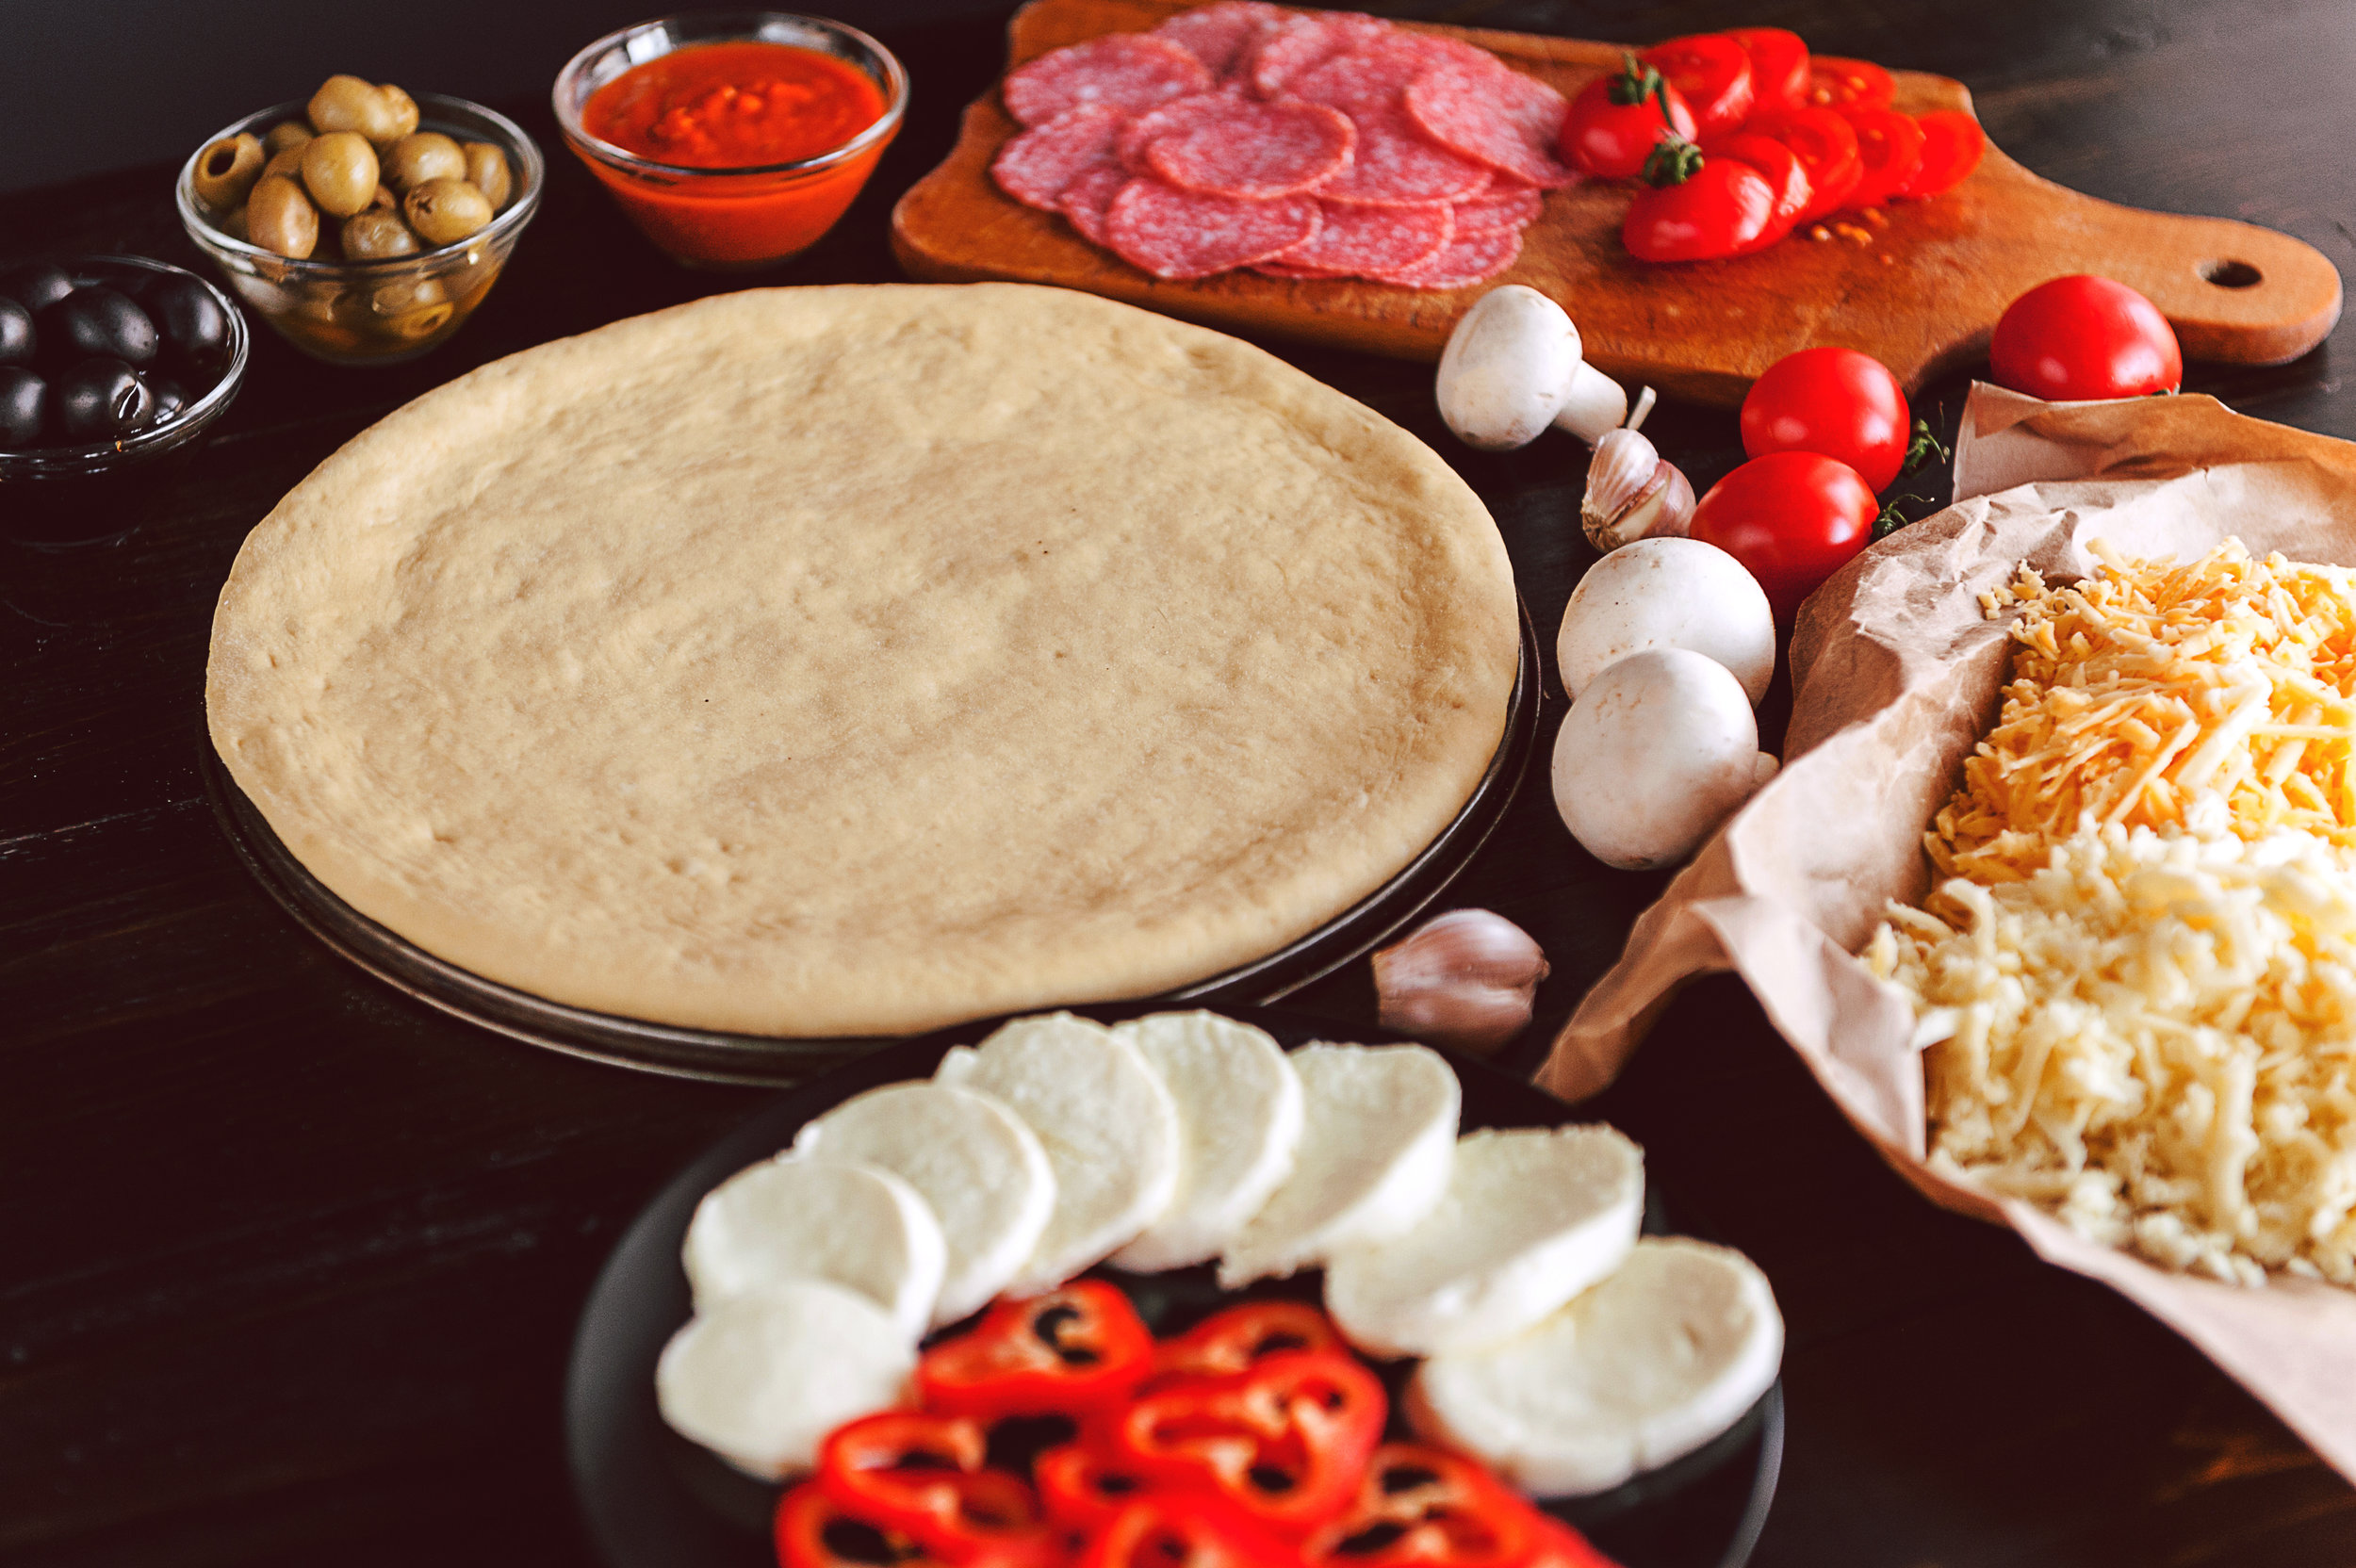 Multi Grain Base - We prepare multi -grain base pizzas, as opposed to maida base that most pizzas are made with. It's pointless worrying about the extra kilos and the rigorous exercise routines. Just indulge!